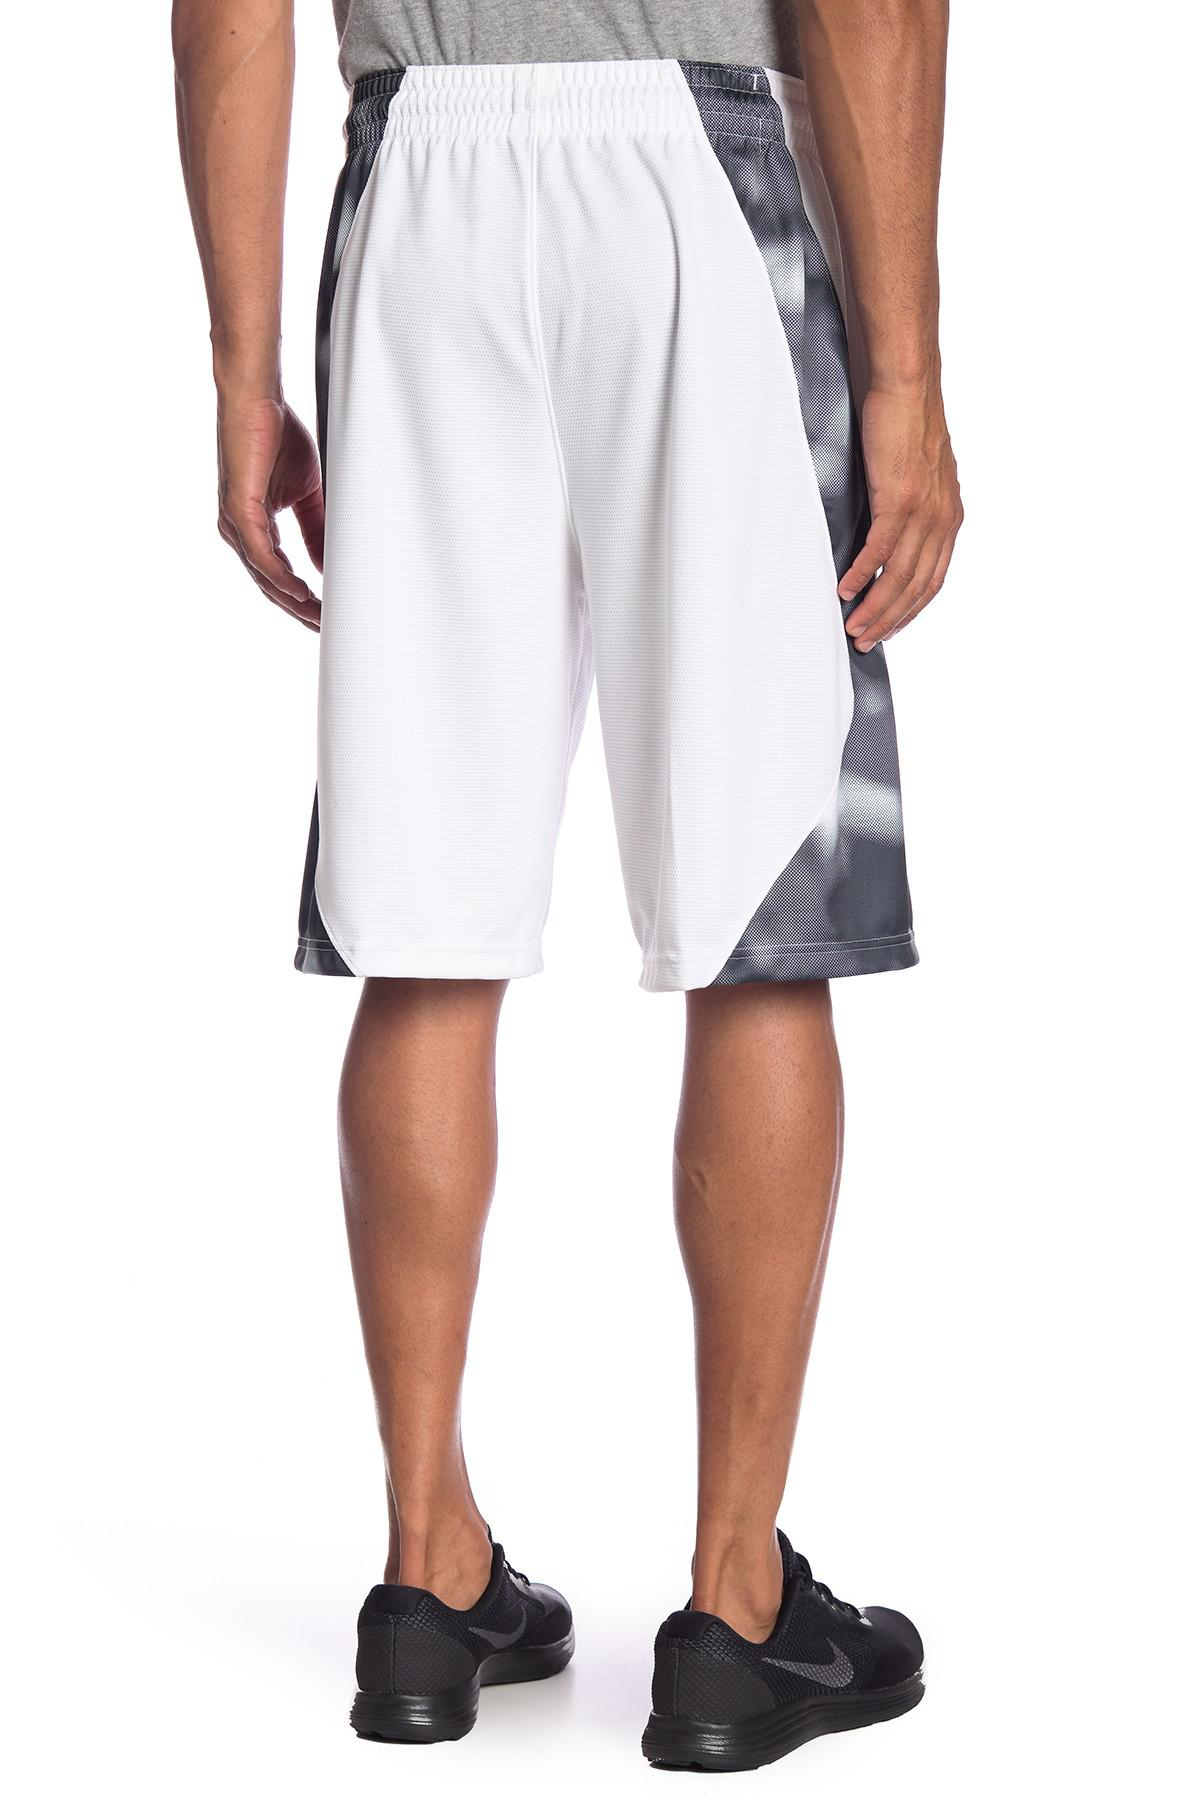 58a5b84f81fb Lyst - Nike Elite Posterize Basketball Shorts in White for Men